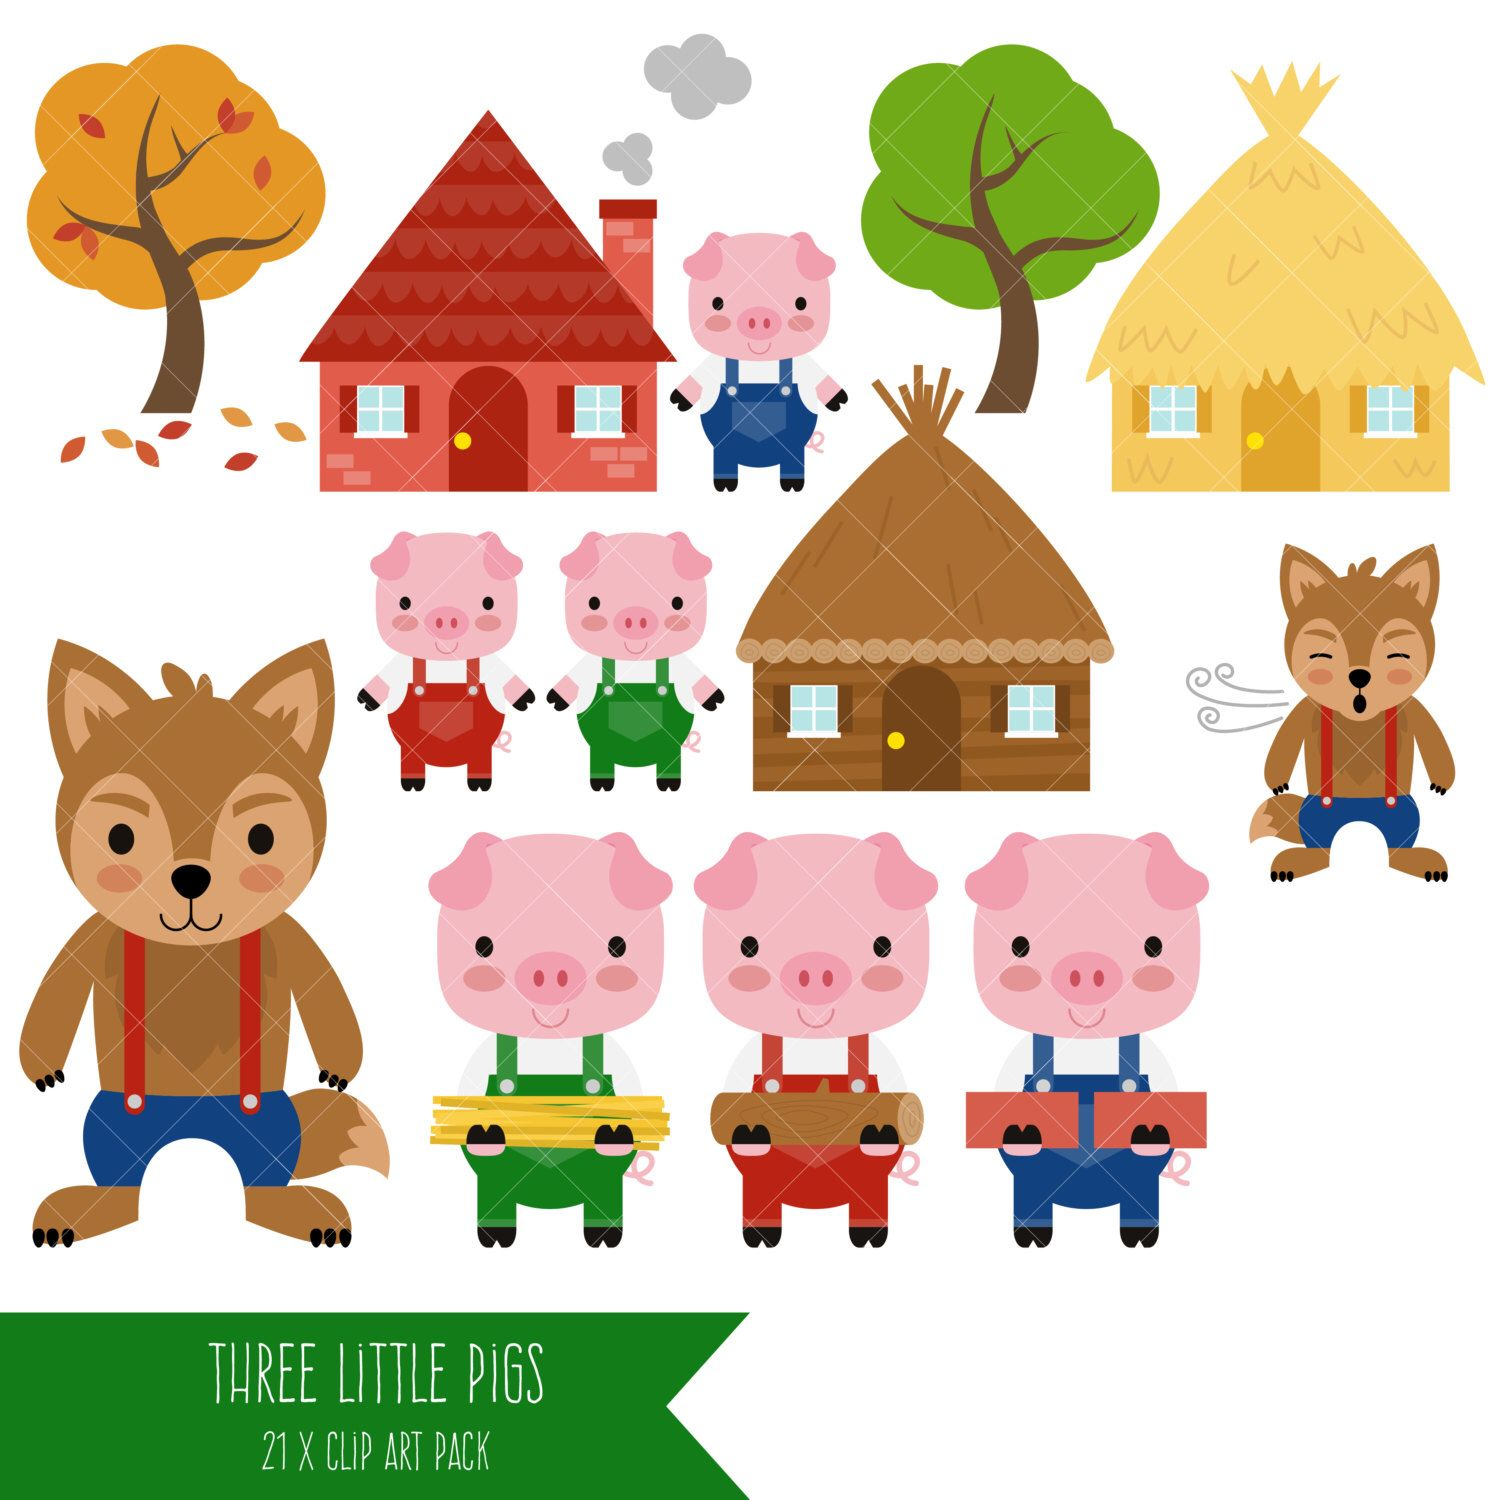 hight resolution of three little pigs clipart big bad wolf clip art by clipartisan on etsy https